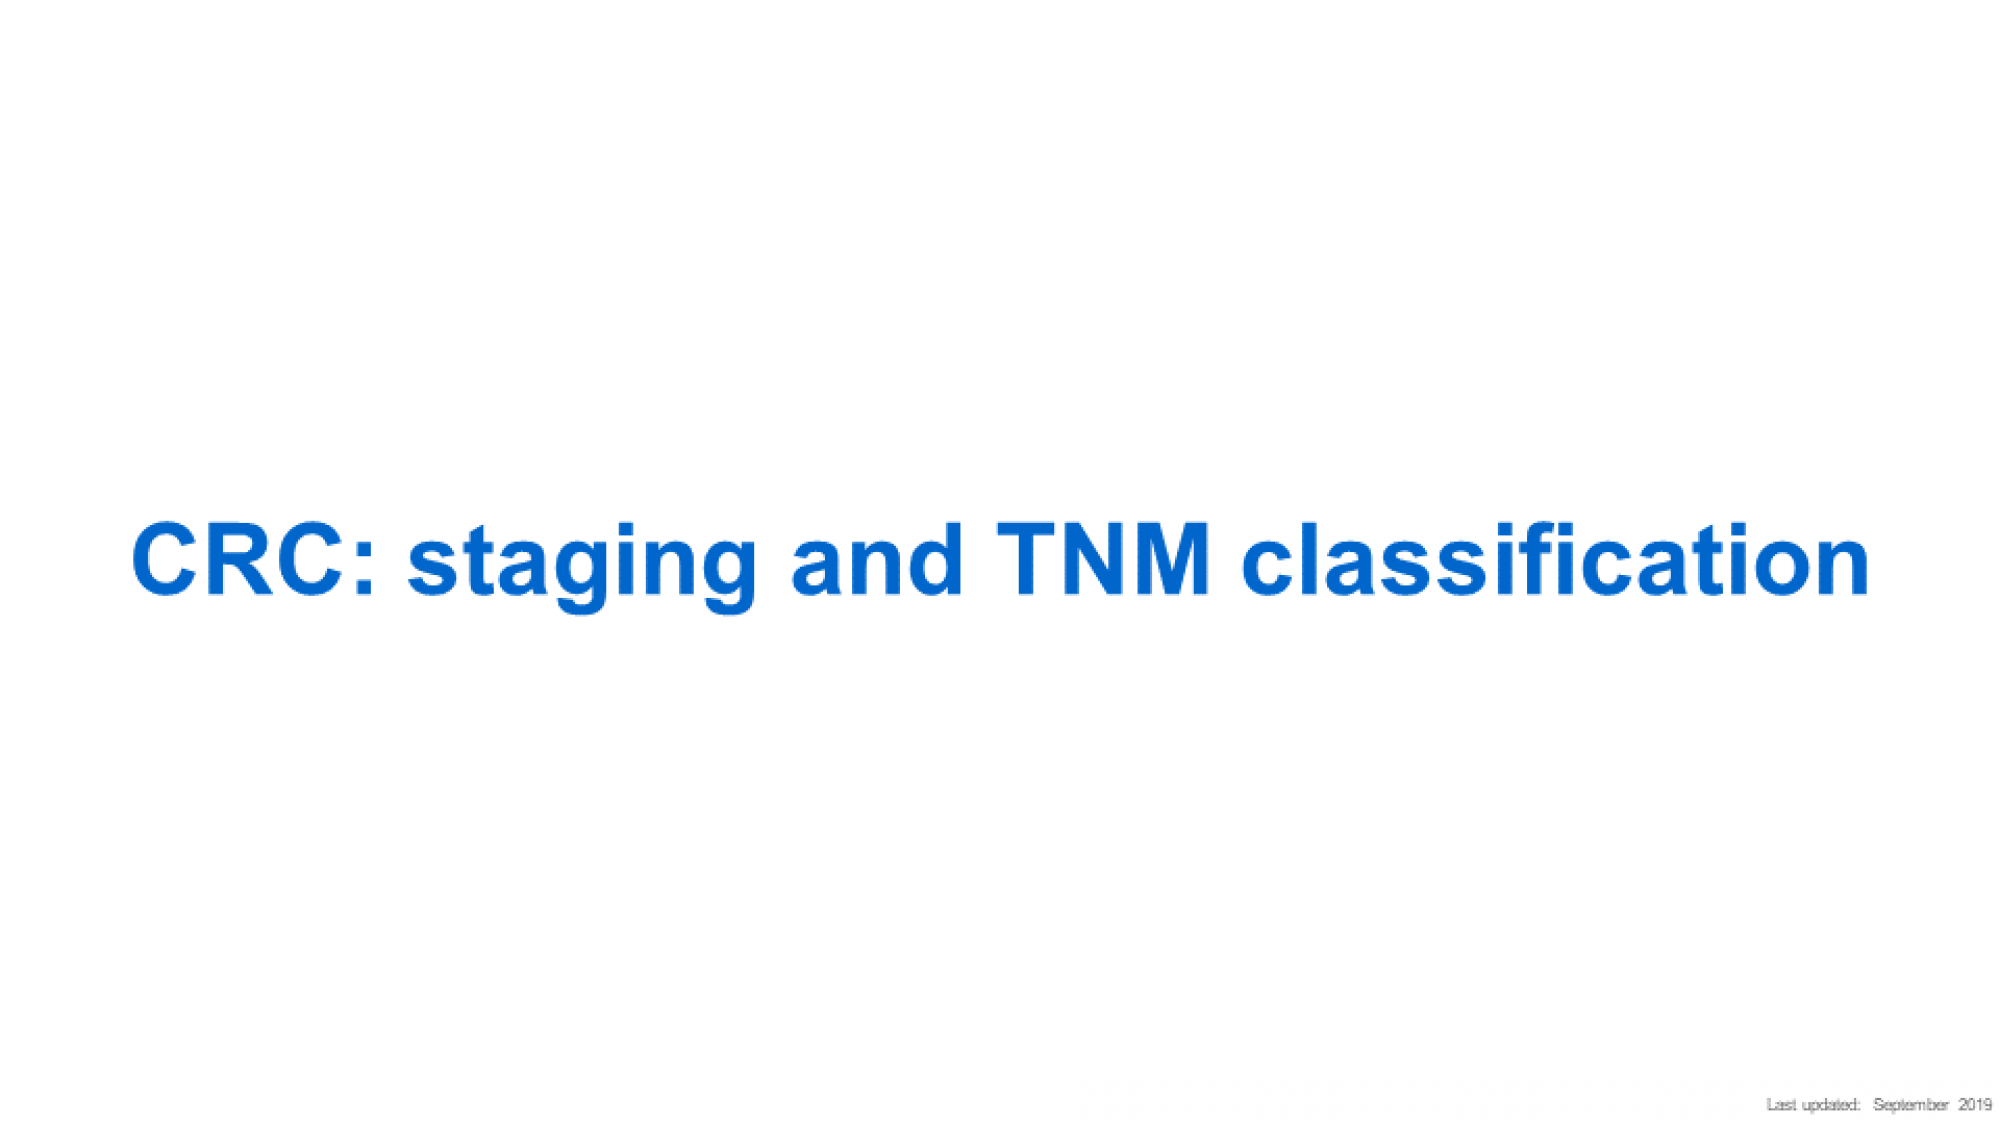 CRC staging and TNM classification